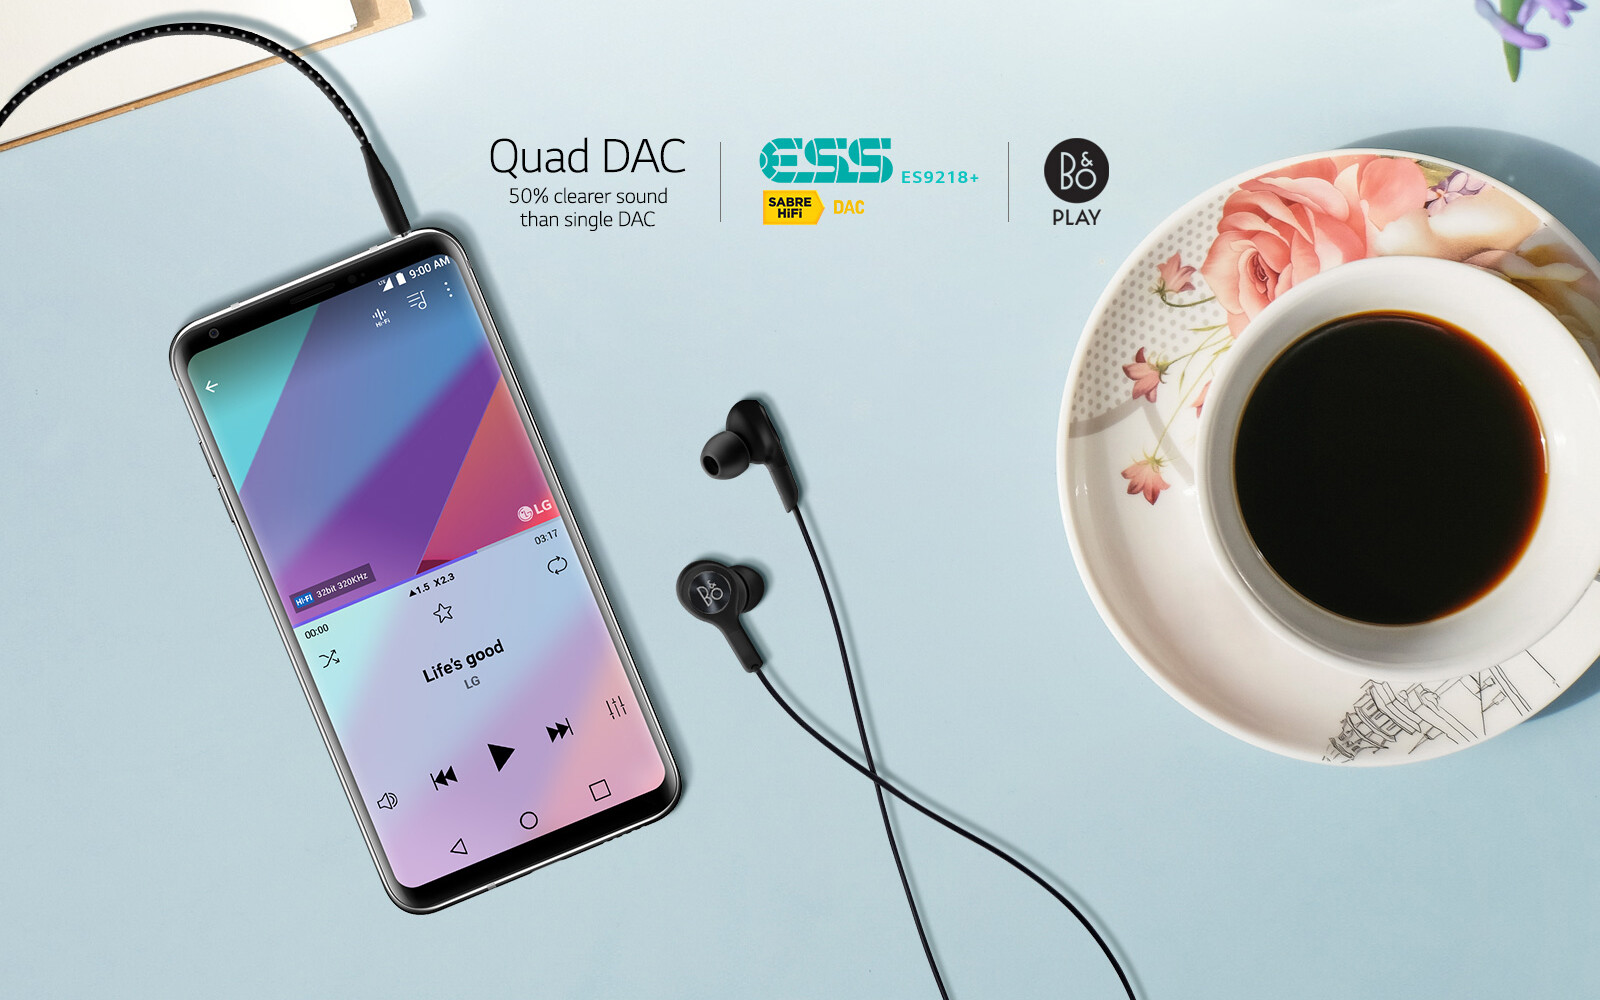 How turn on the LG V30's Hi-Fi Quad DAC, and what does it do